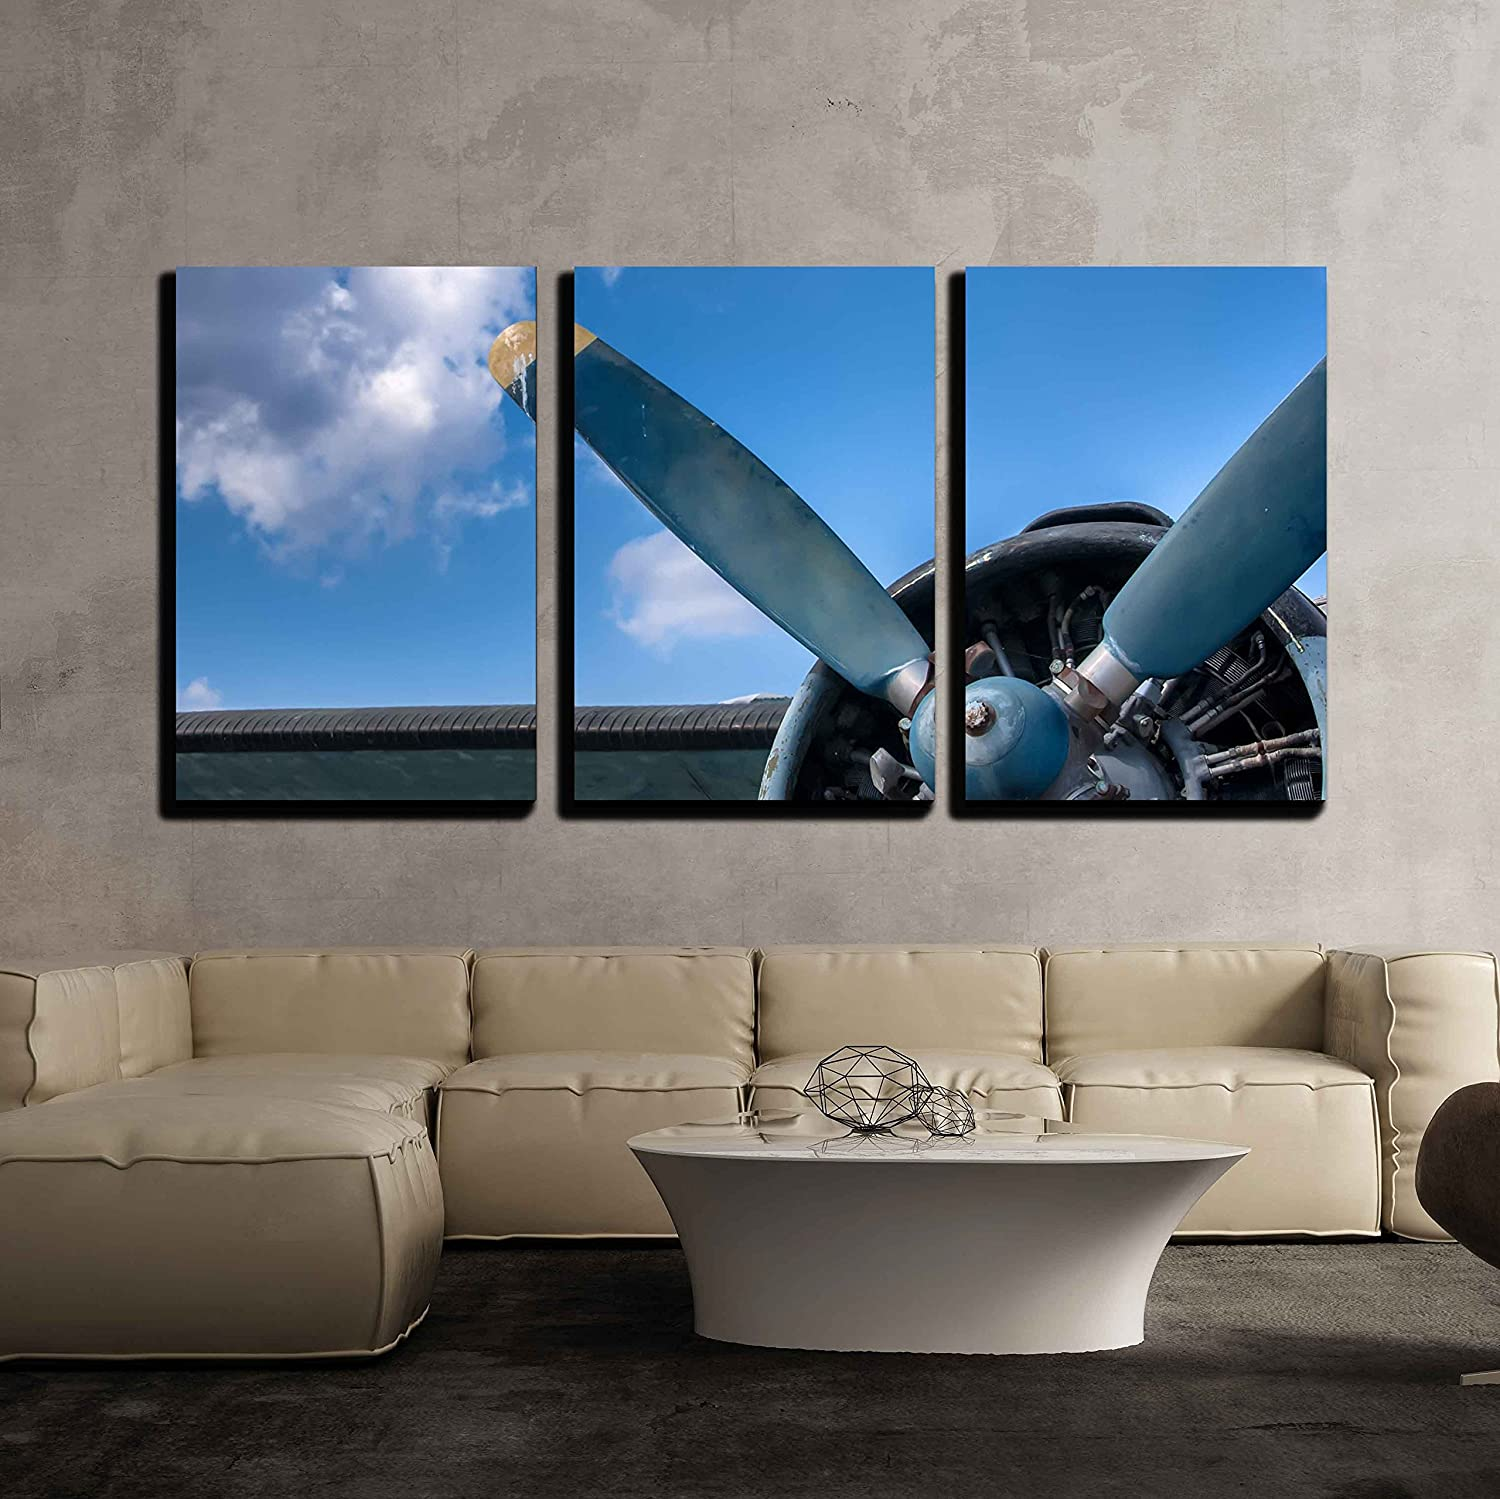 Wall26 art prints framed art canvas prints greeting wall26 3 piece canvas wall art propeller and engine of vintage airplane modern home decor stretched and framed ready to hang 16x24x3 panels amipublicfo Choice Image